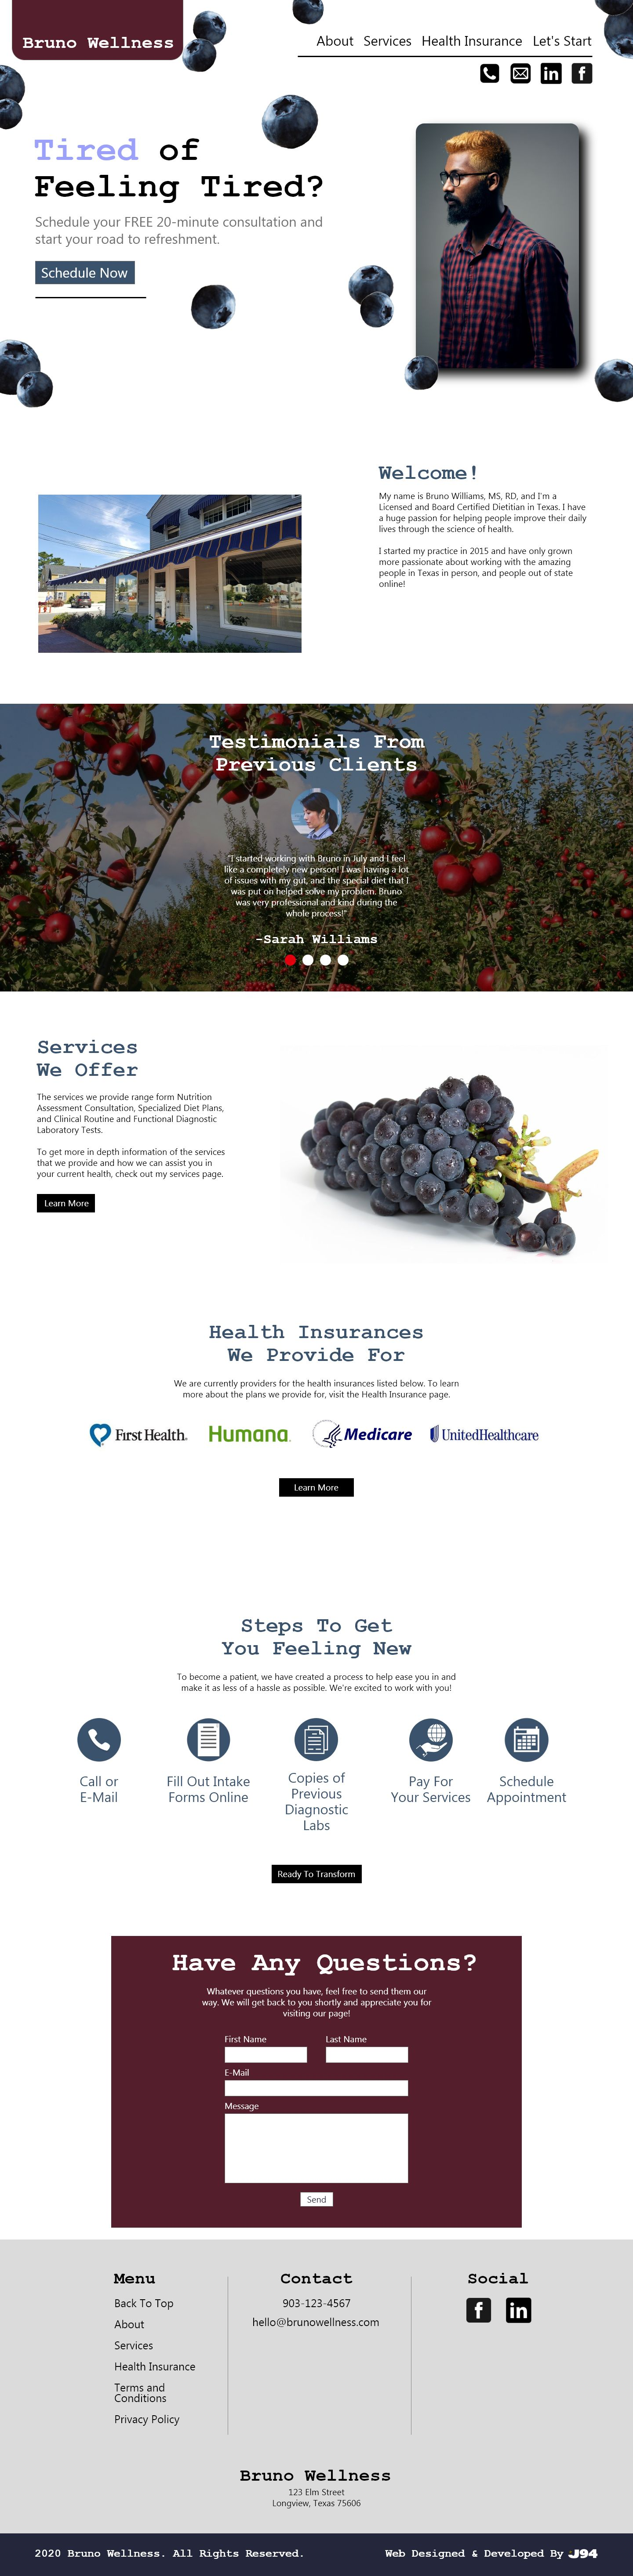 Webpage layout for a dietitian.